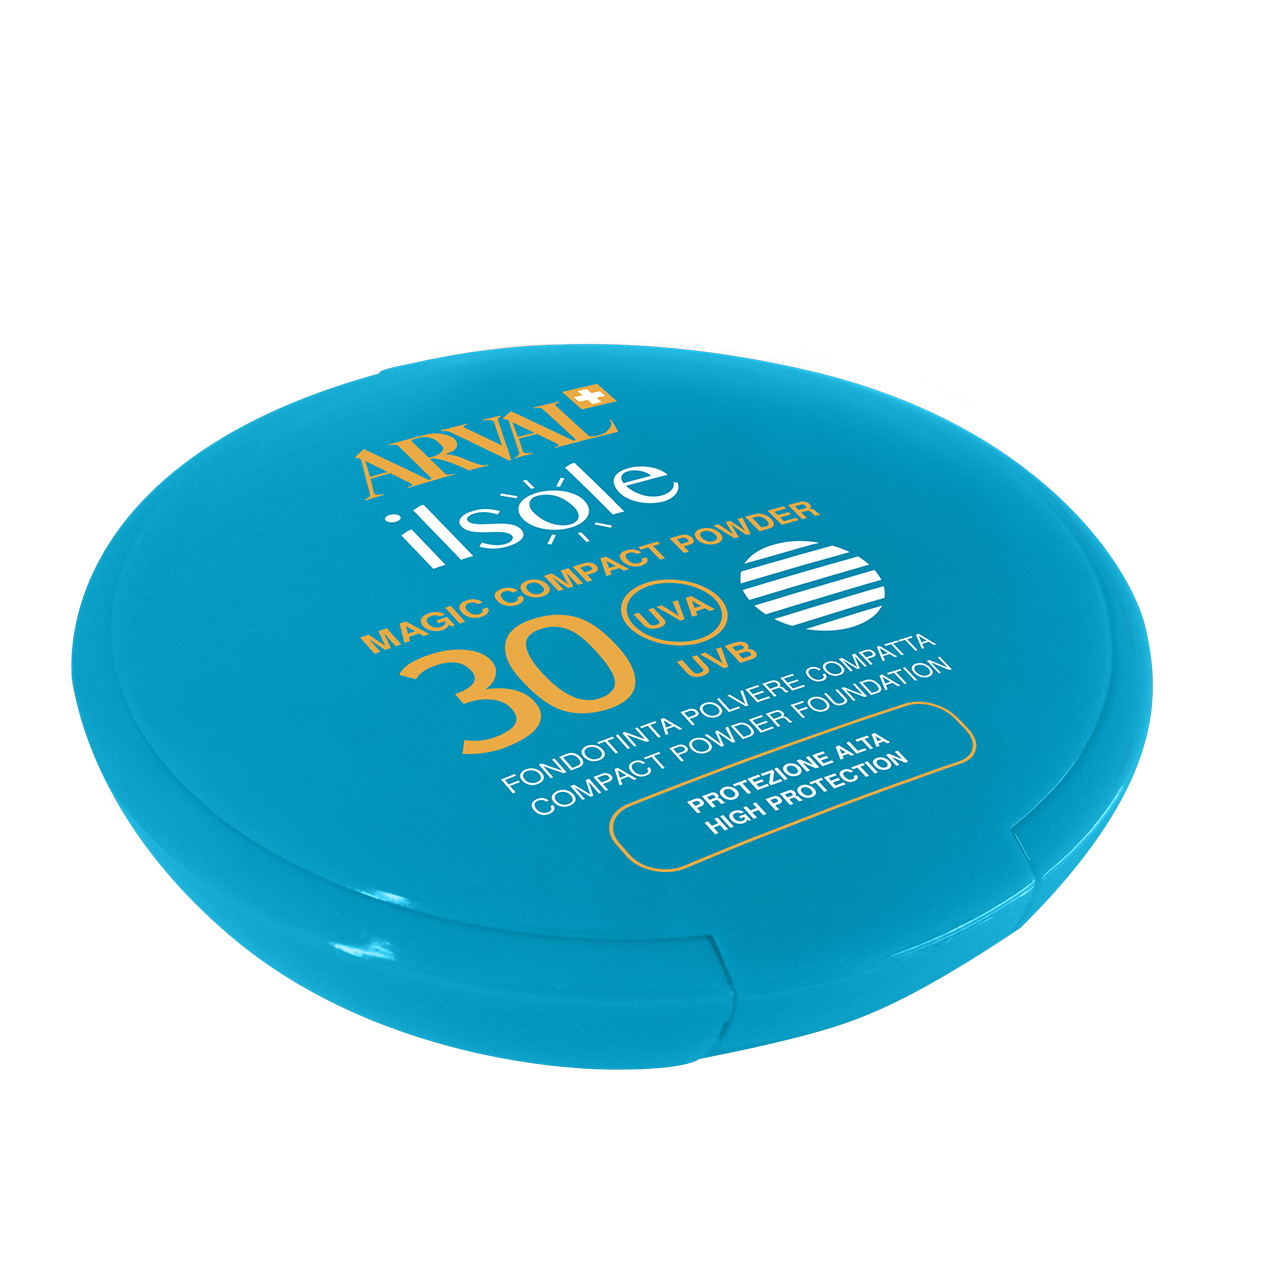 Arval IlSole Magic Compact Powder SPF30 n. 02 rosy beige